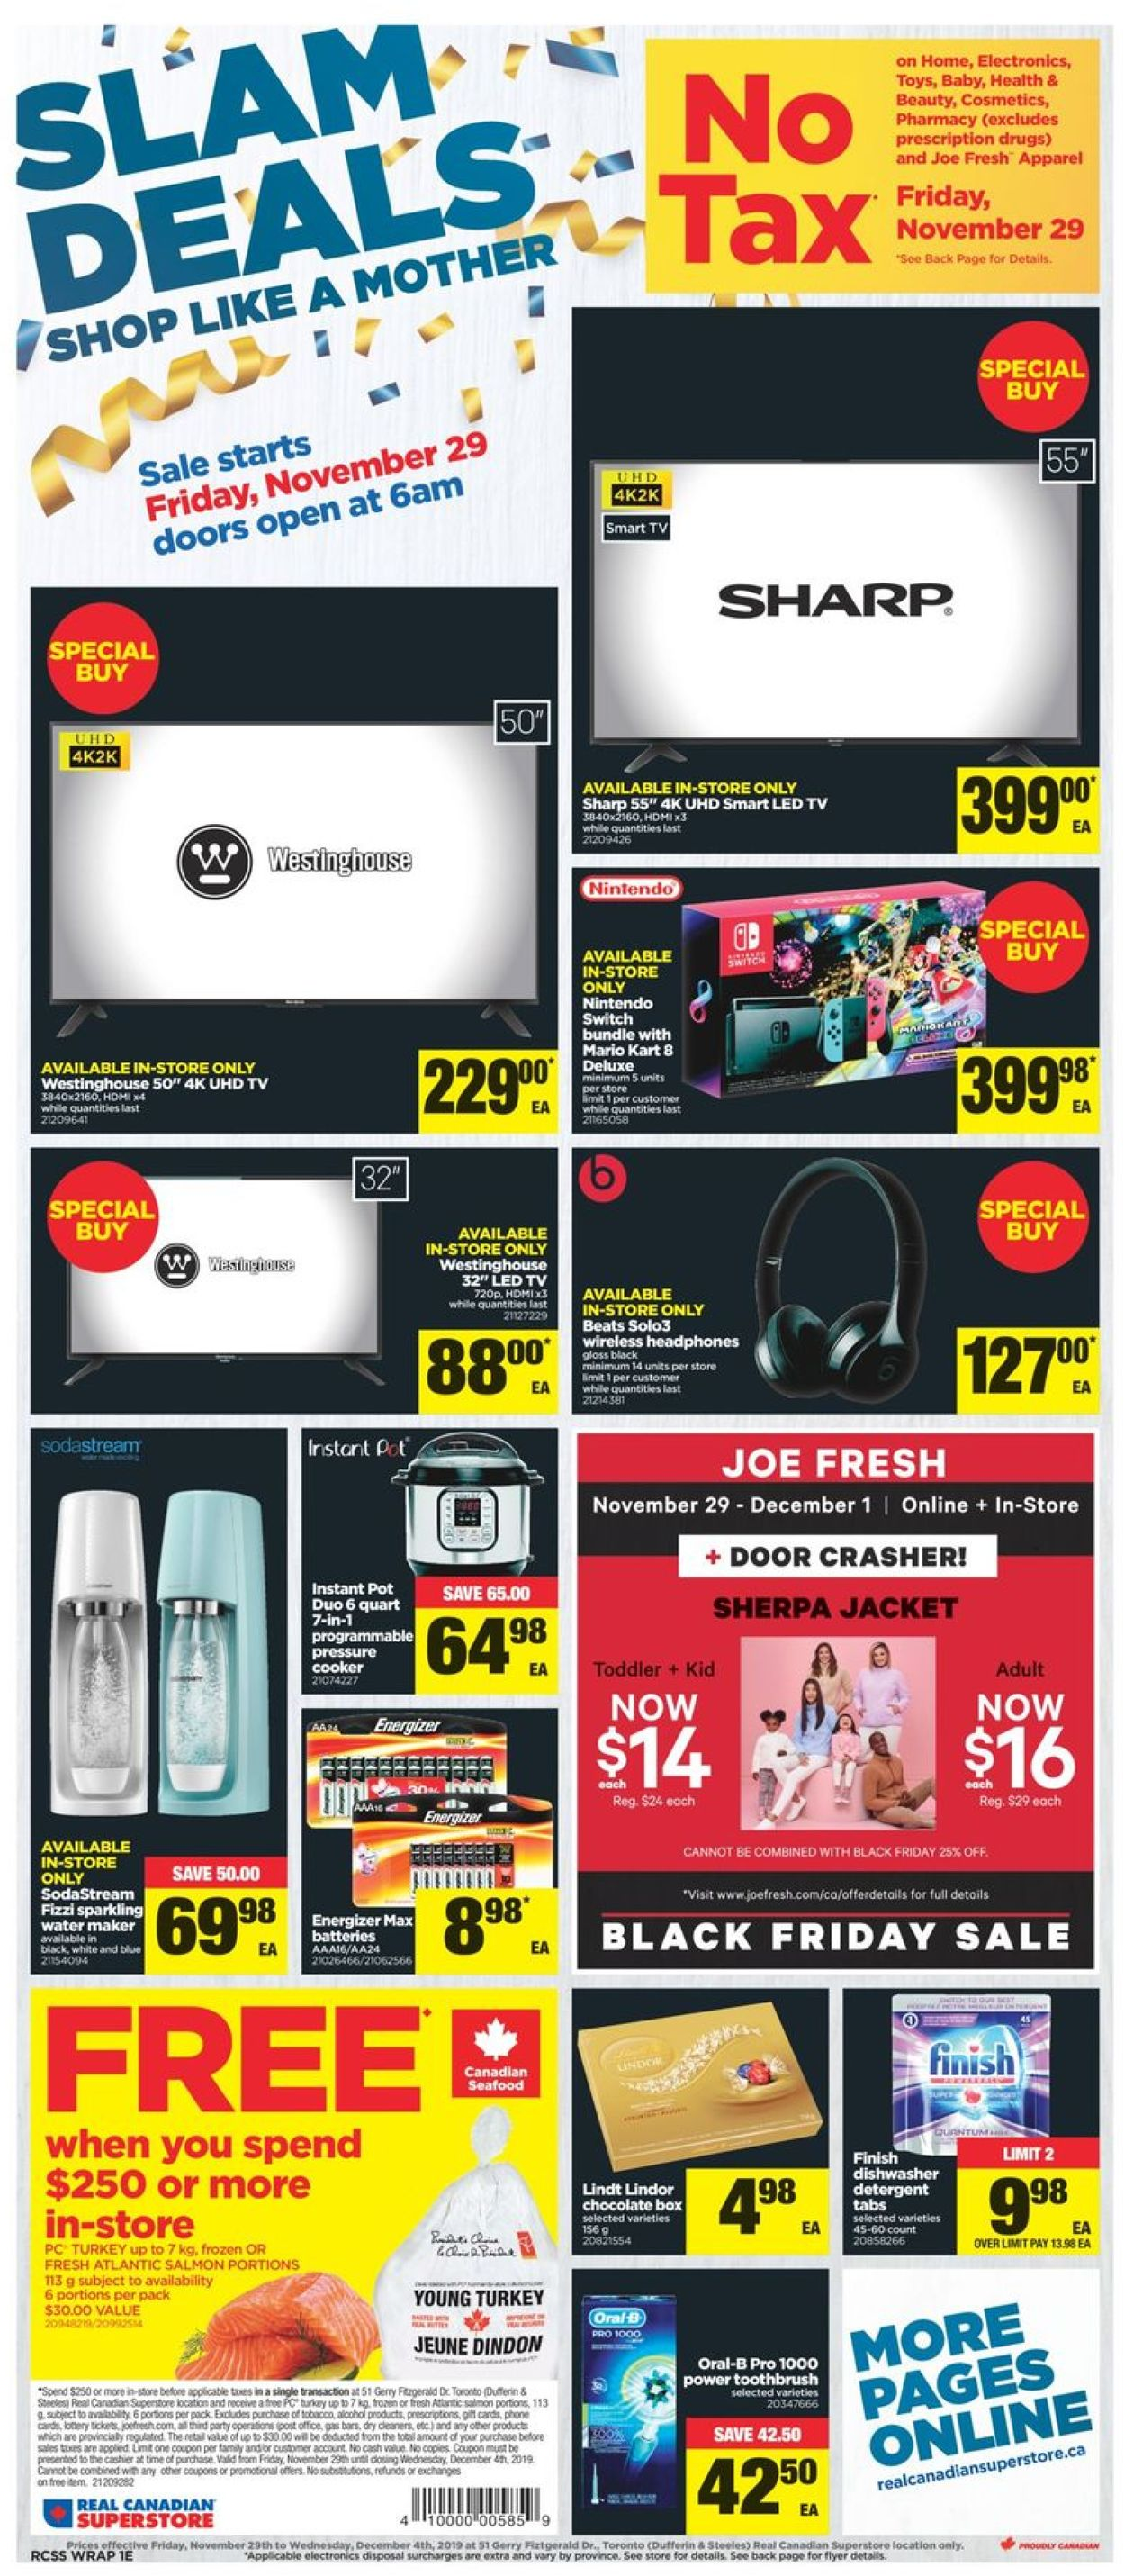 Real Canadian Superstore BLACK FRIDAY 2019 SALE